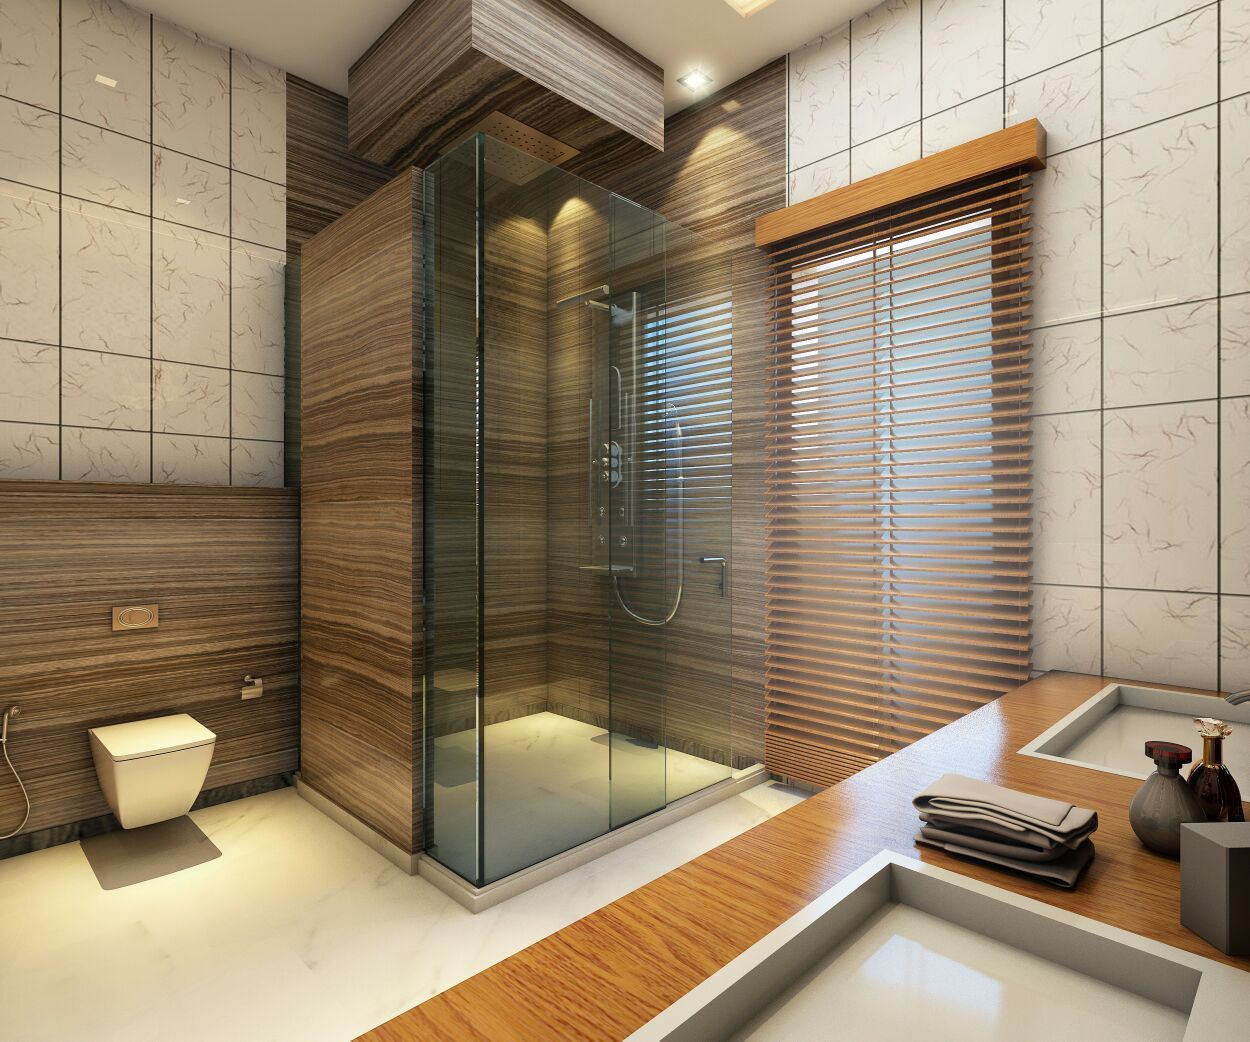 3D Design Luxury Interior Designamit Sharma Inspiration 3D Bathroom Designs Inspiration Design